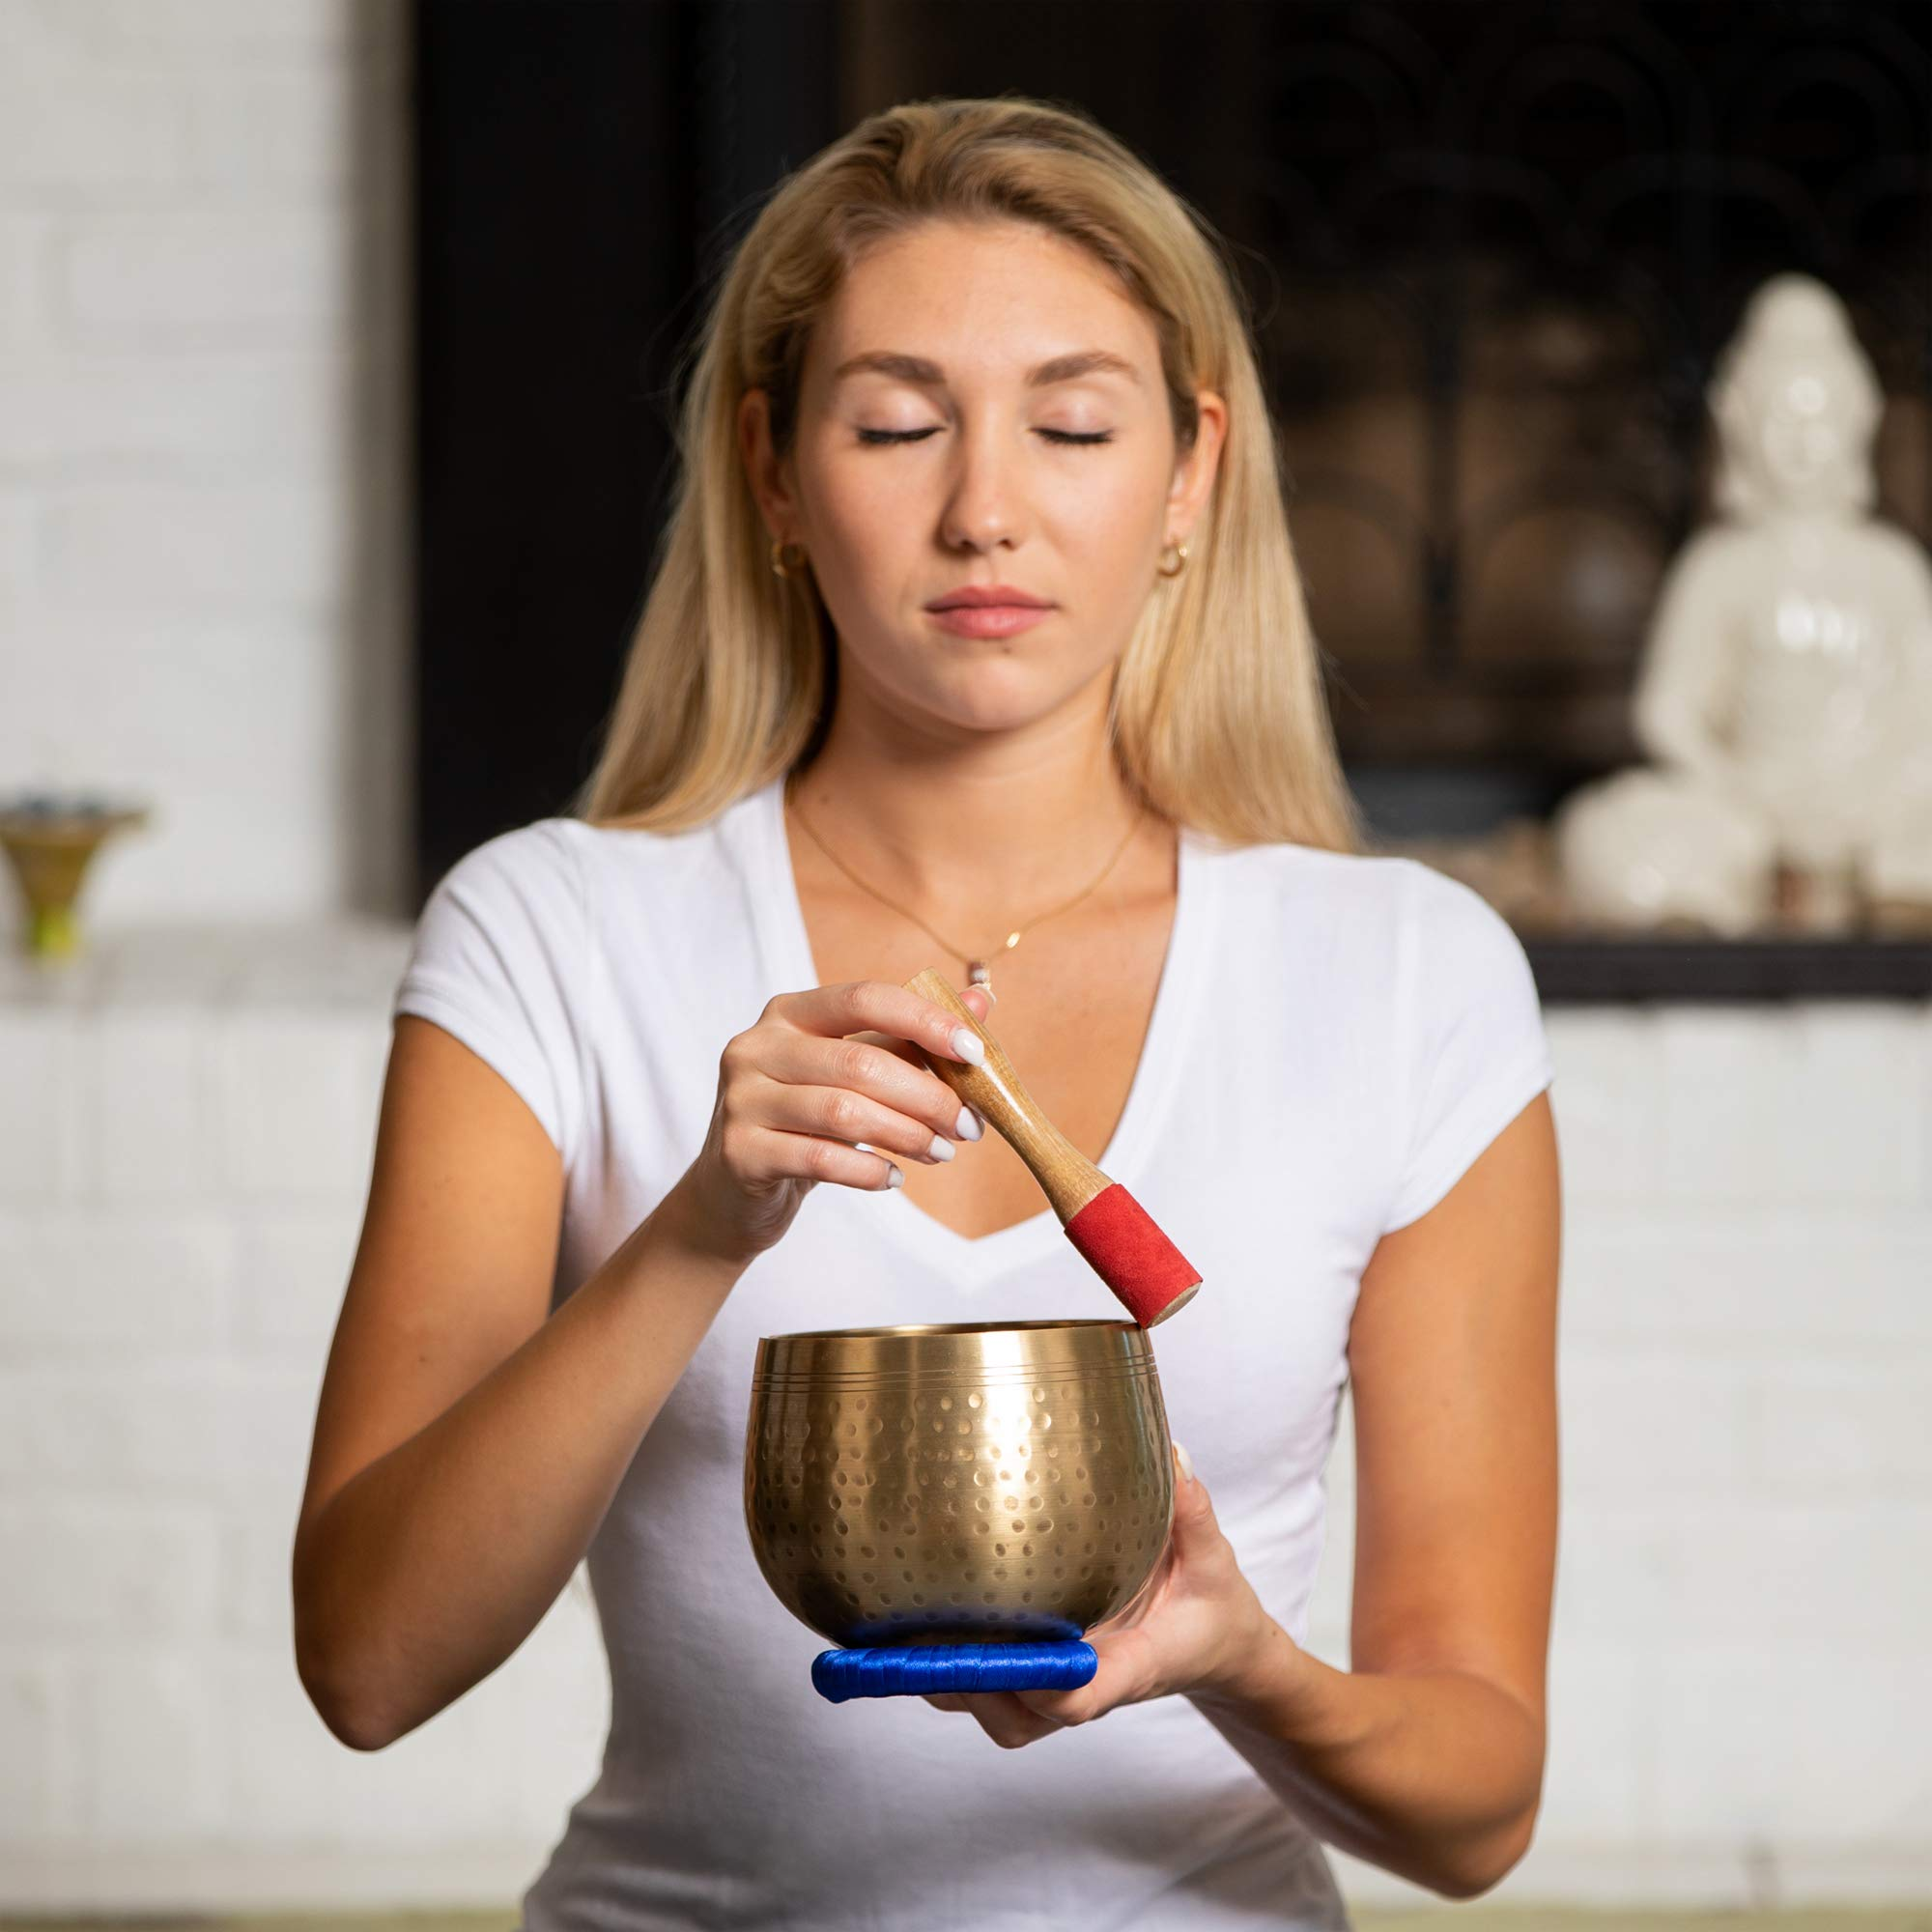 Meditative Brass Singing Bowl with Mallet and Cushion  -Tibetan Sound Bowls for Energy Healing, Mindfulness, Grounding, Zen, Meditation  -  Exquisite, Unique Home Decor and Gift Sets by Telsha (Image #7)